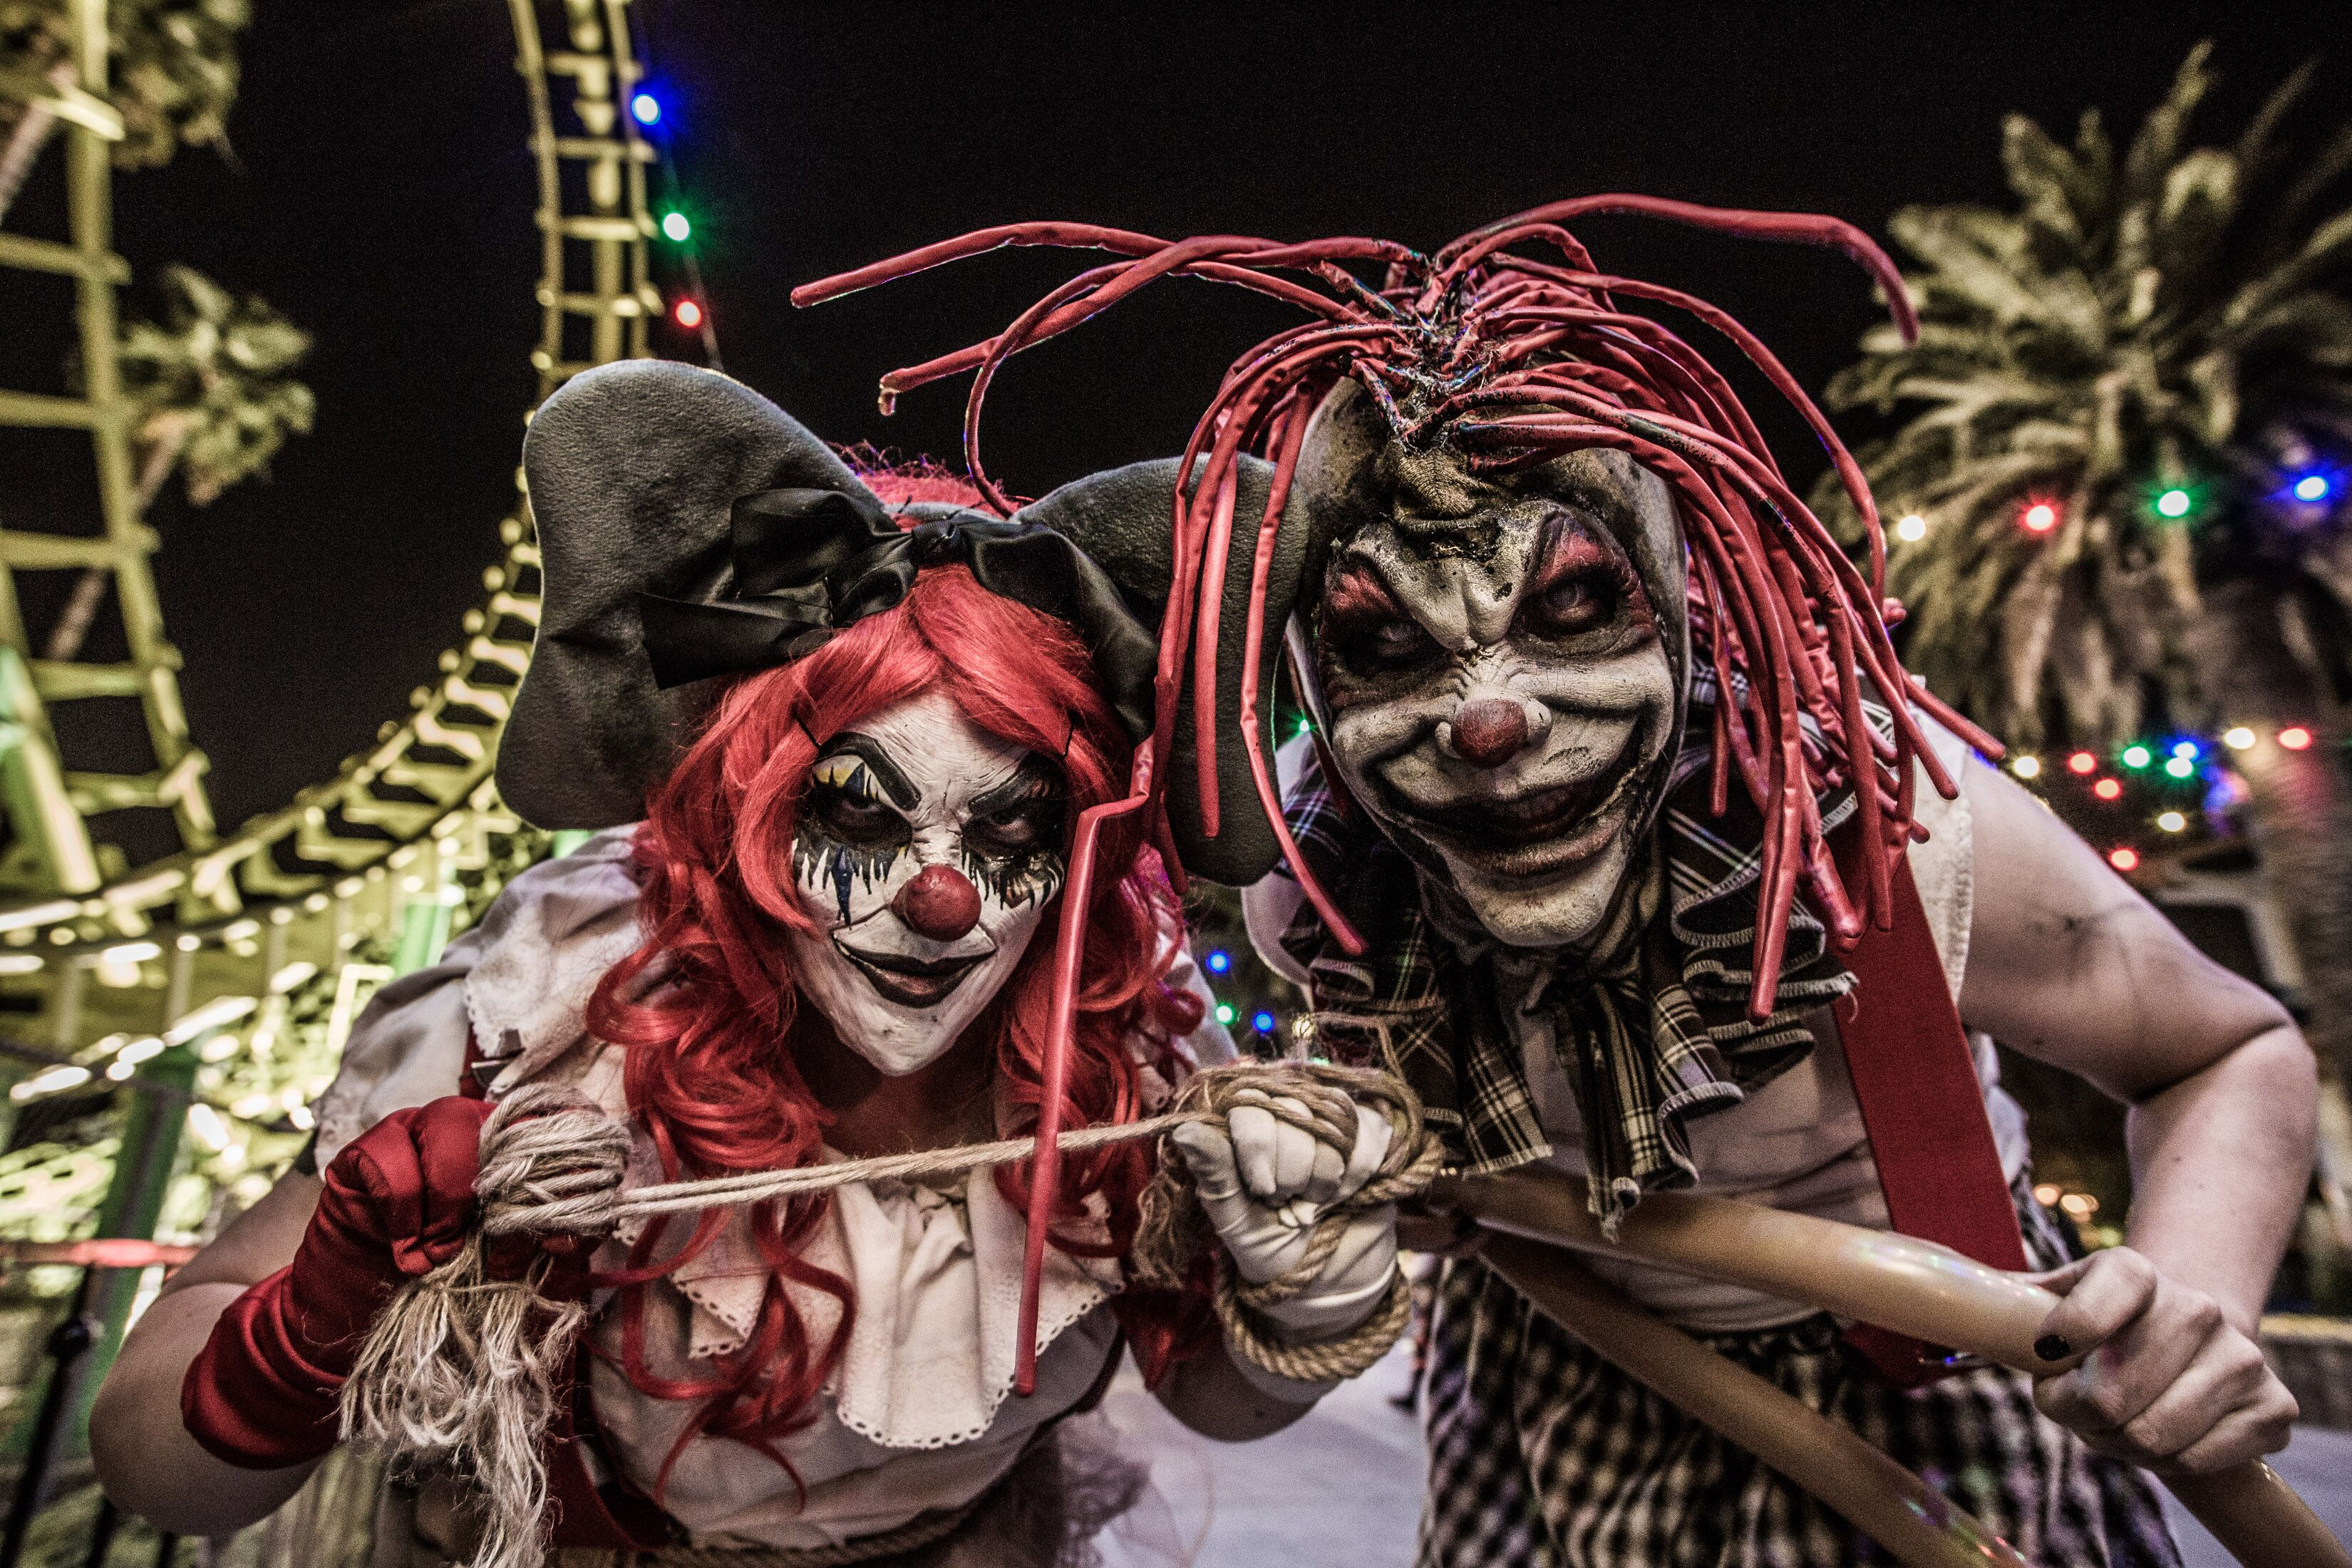 Get Ready for Screams as the Knotts Scary Farm 2019 Mazes are Announced!